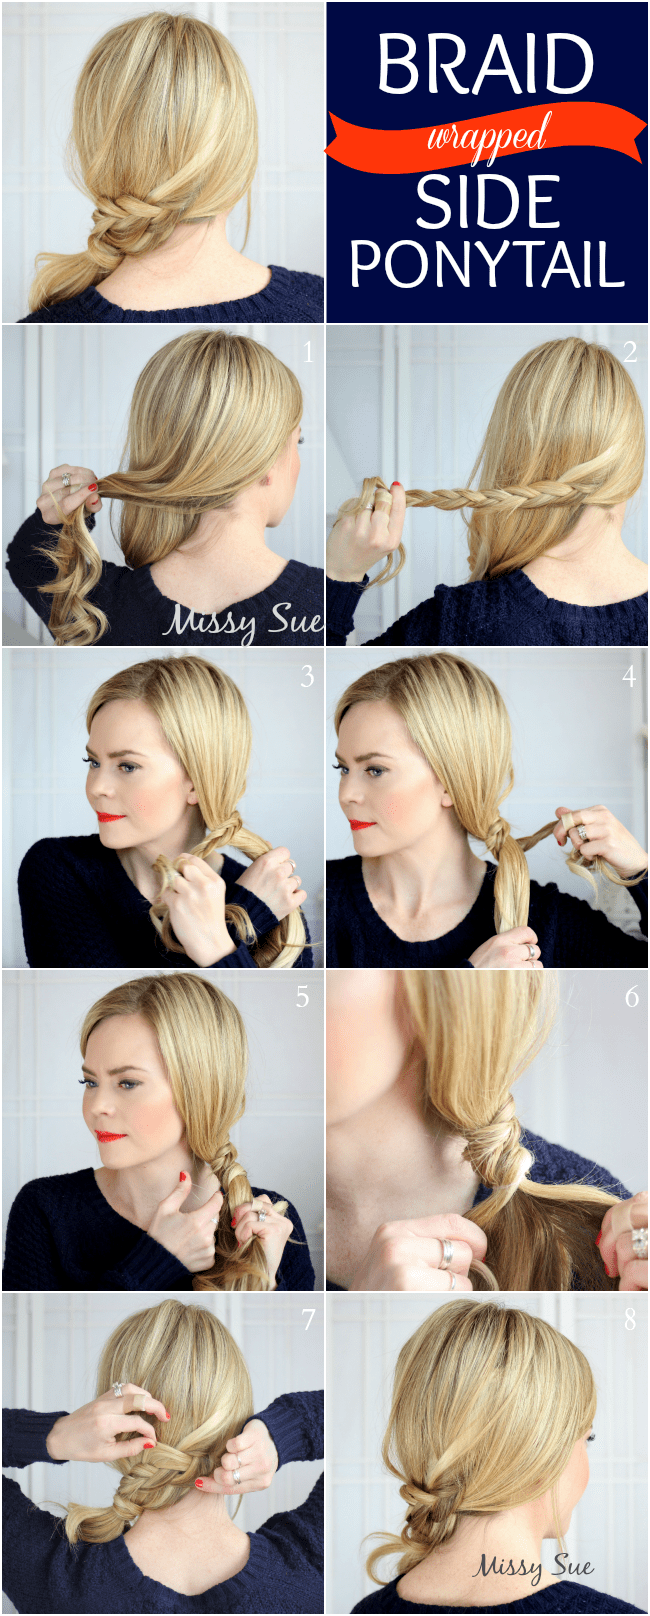 side ponytail archives | missy sue